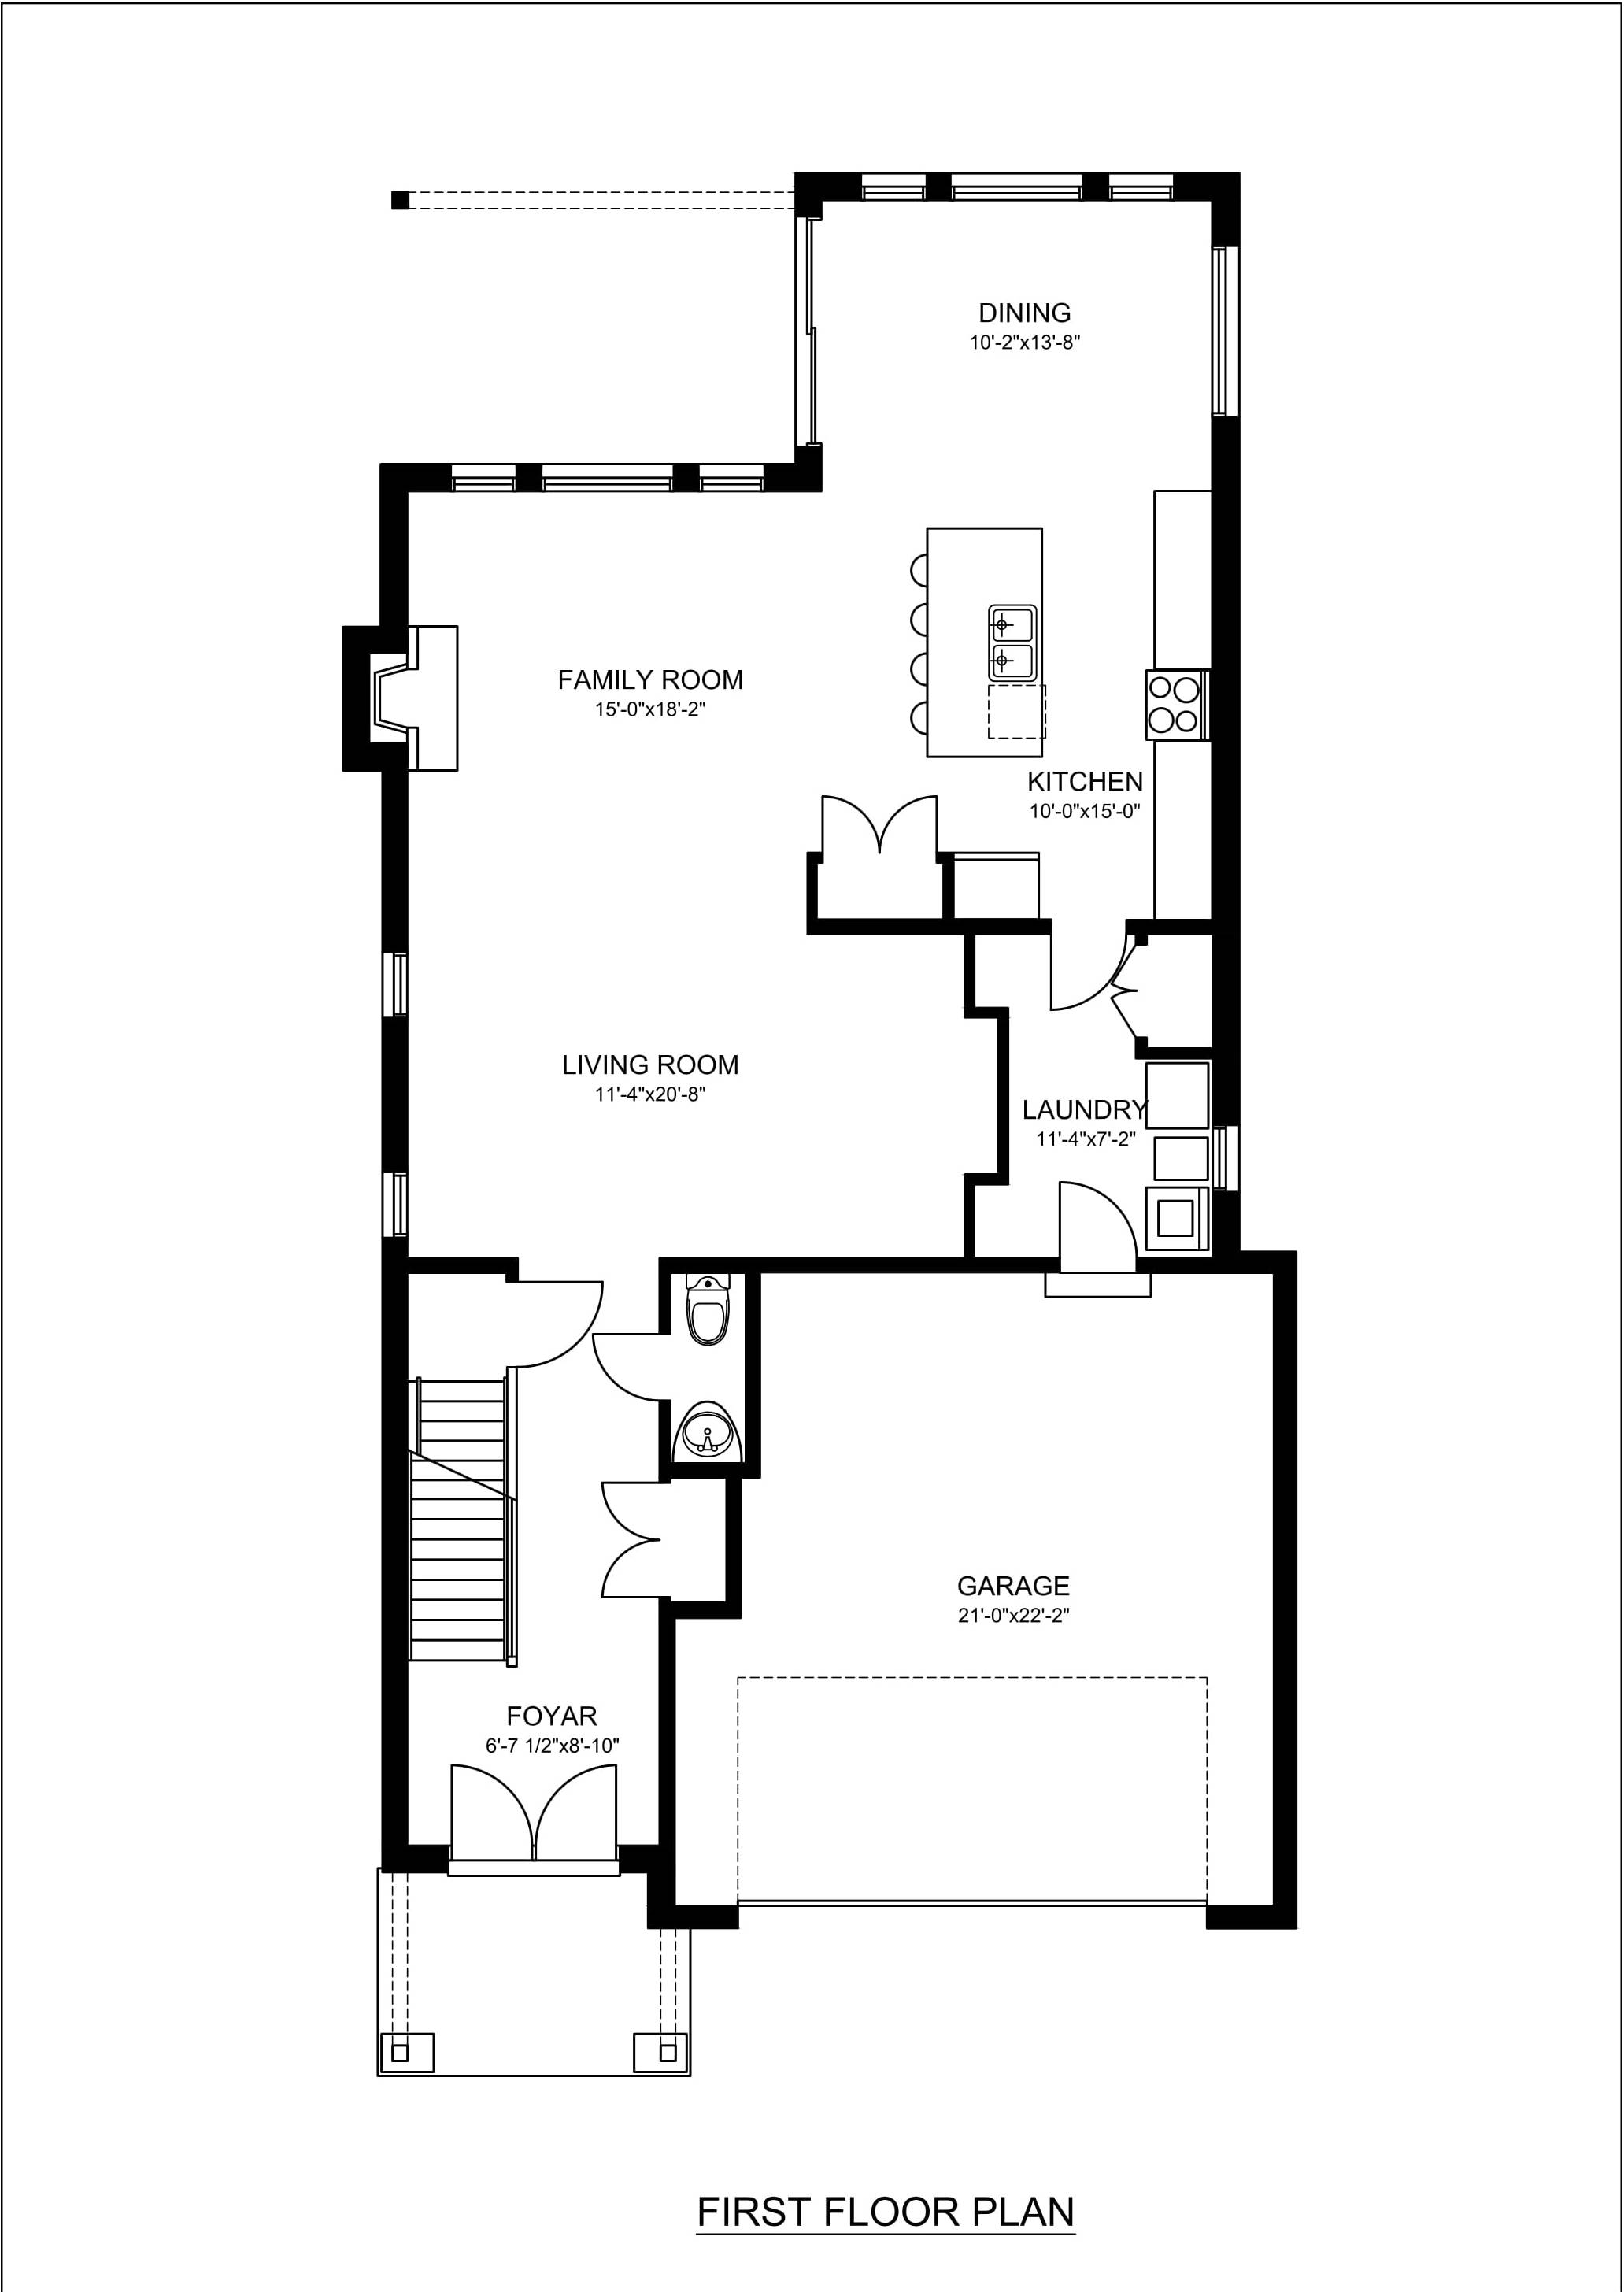 2d floor plan design rendering samples examples for Sample building plans